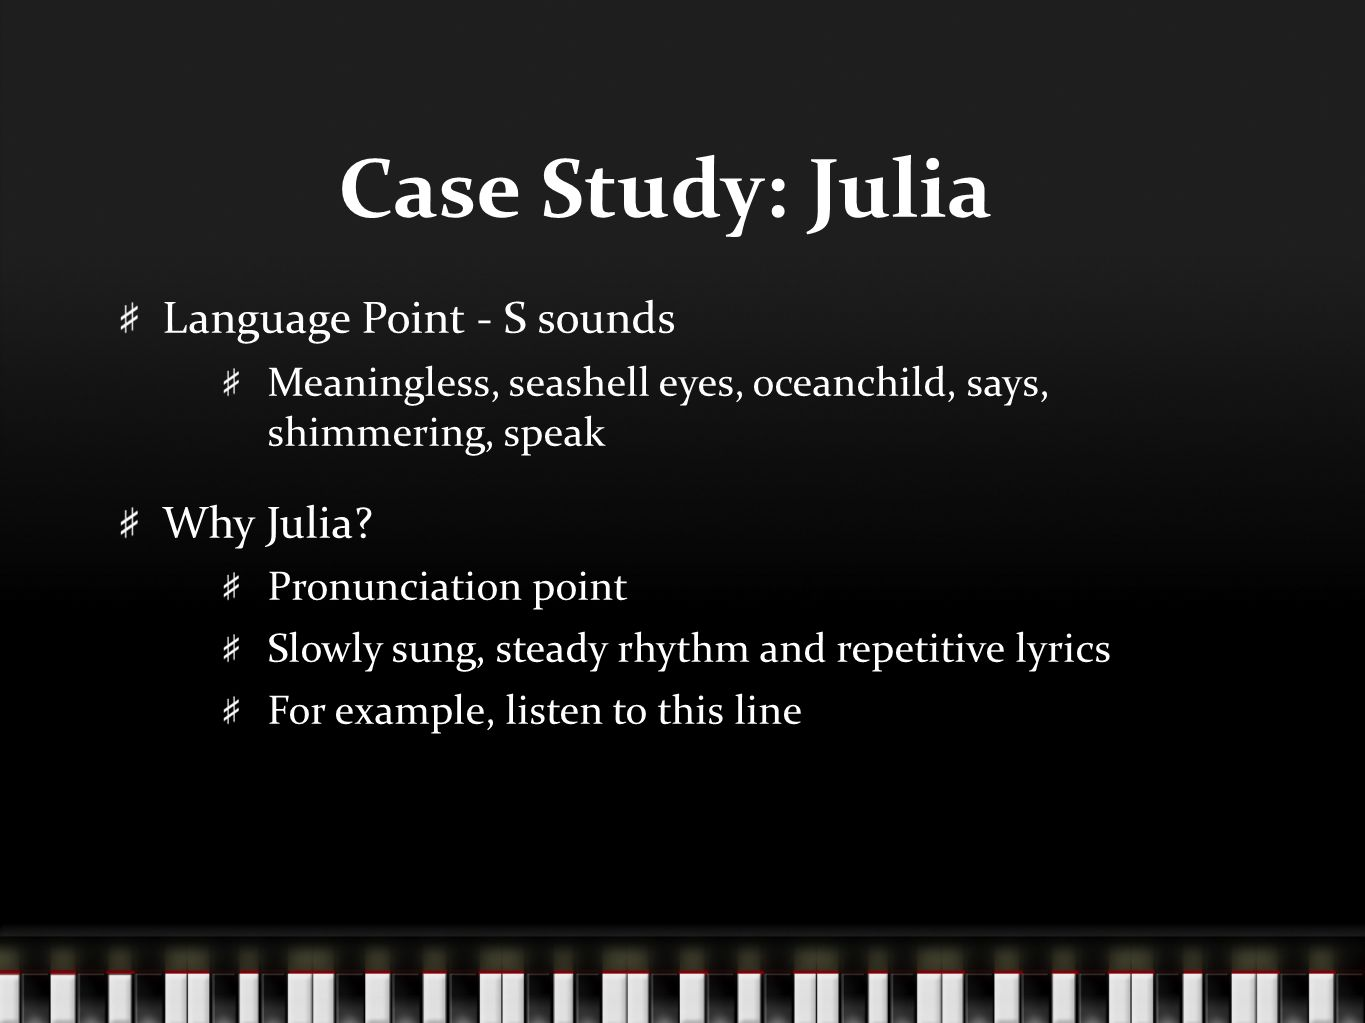 Case Study: Julia Language Point - S sounds Meaningless, seashell eyes, oceanchild, says, shimmering, speak Why Julia? Pronunciation point Slowly sung